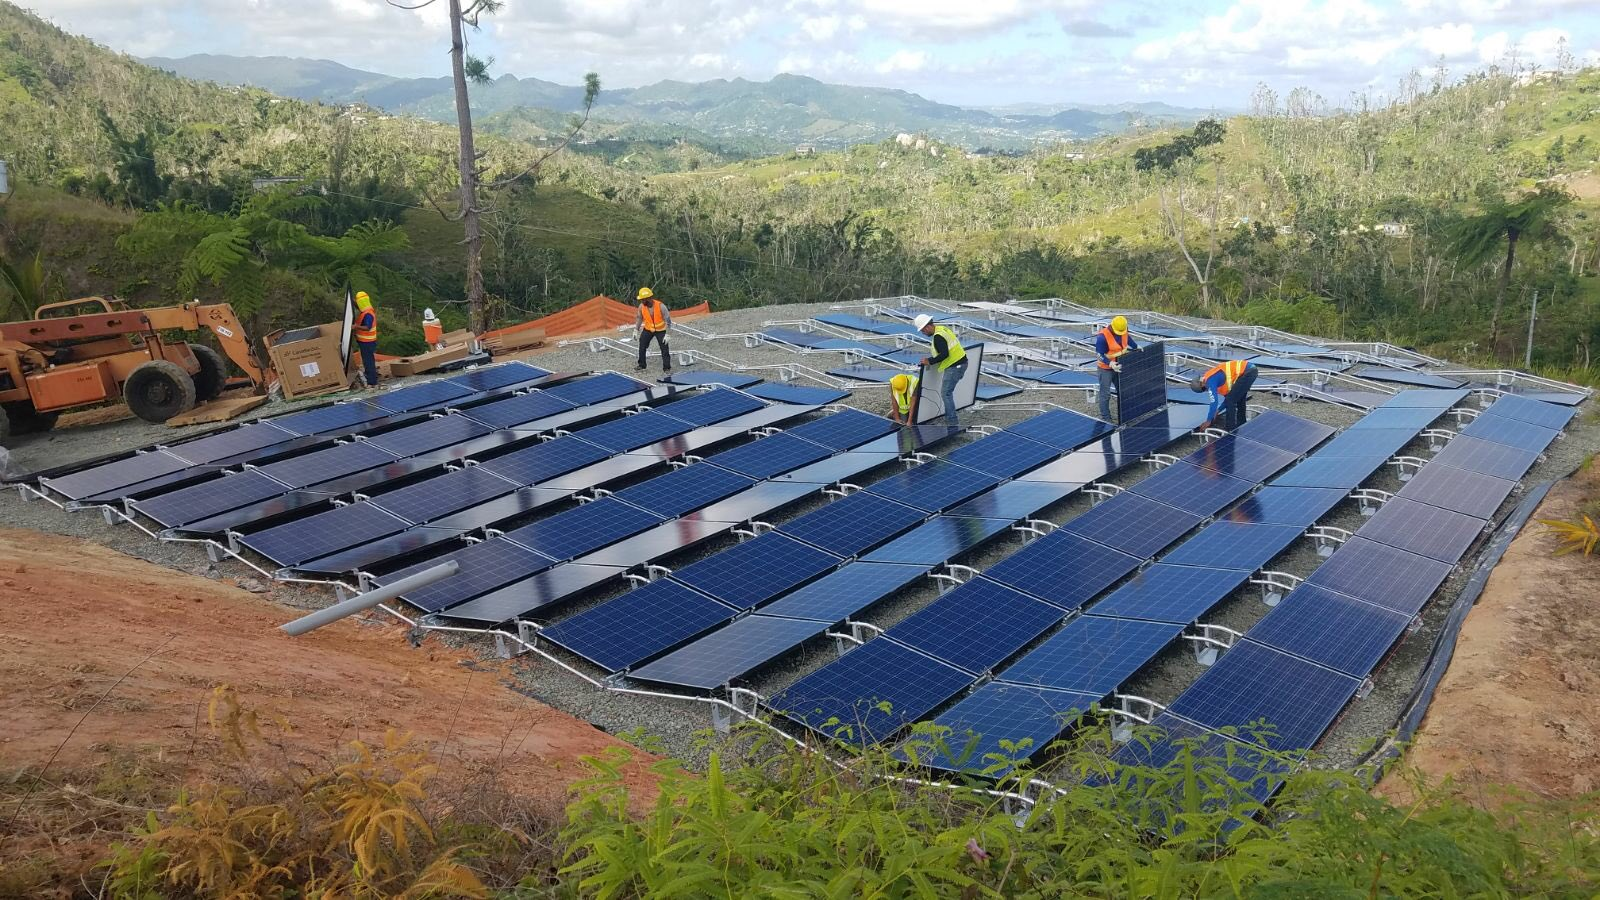 We currently have over 1,000 Tesla batteries on the ground in Puerto Rico delivering power at 662 locations. We're working around the clock to quickly build more projects to support the island https://t.co/5gl4JDYdV5